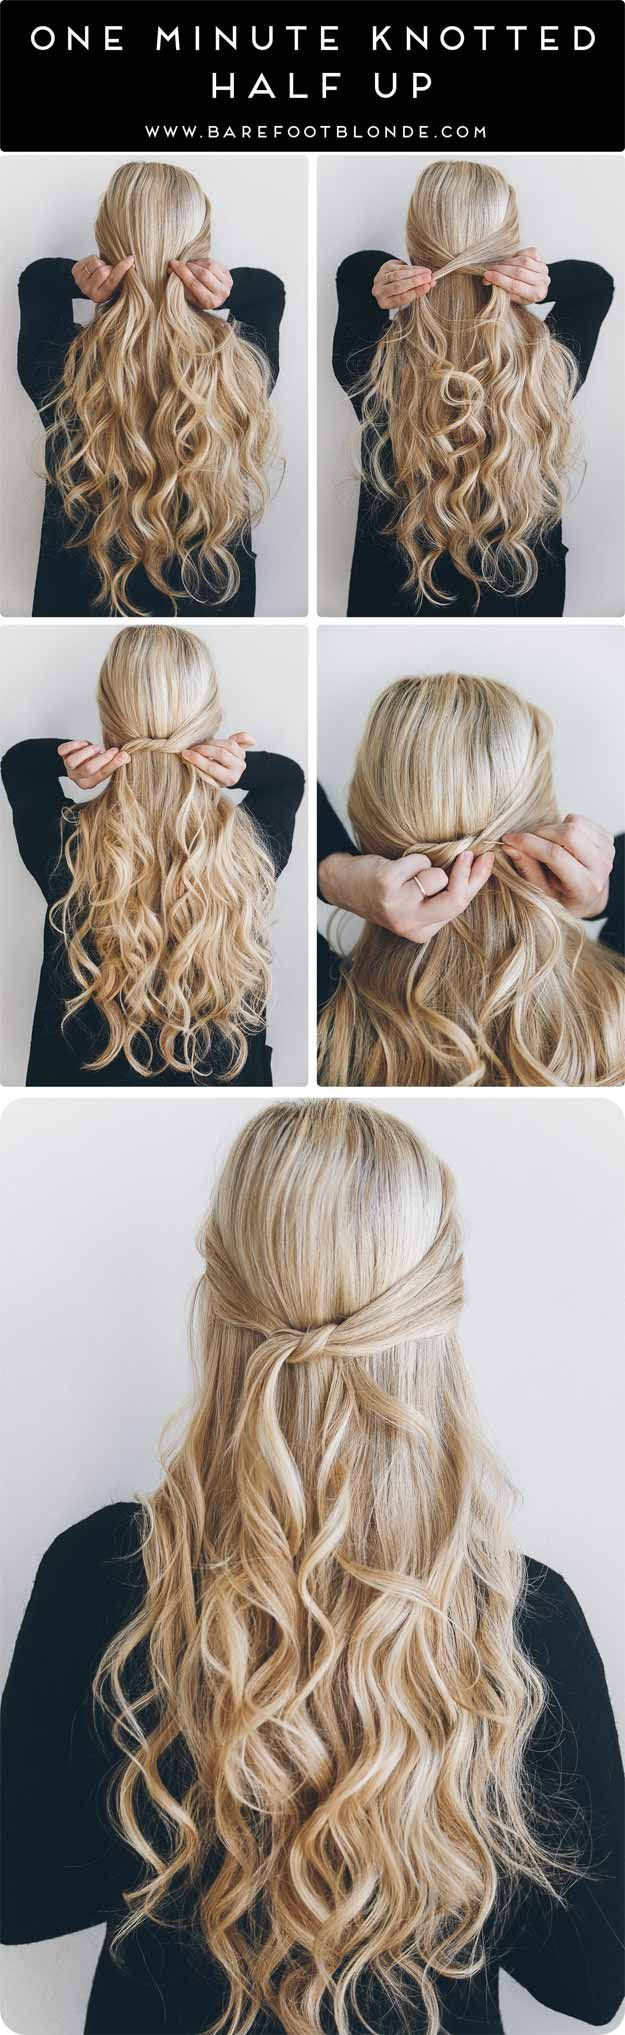 Best 5 Minute Hairstyles - 1 Minute Knotted Half Up - Quick And Easy Hairstyles ...